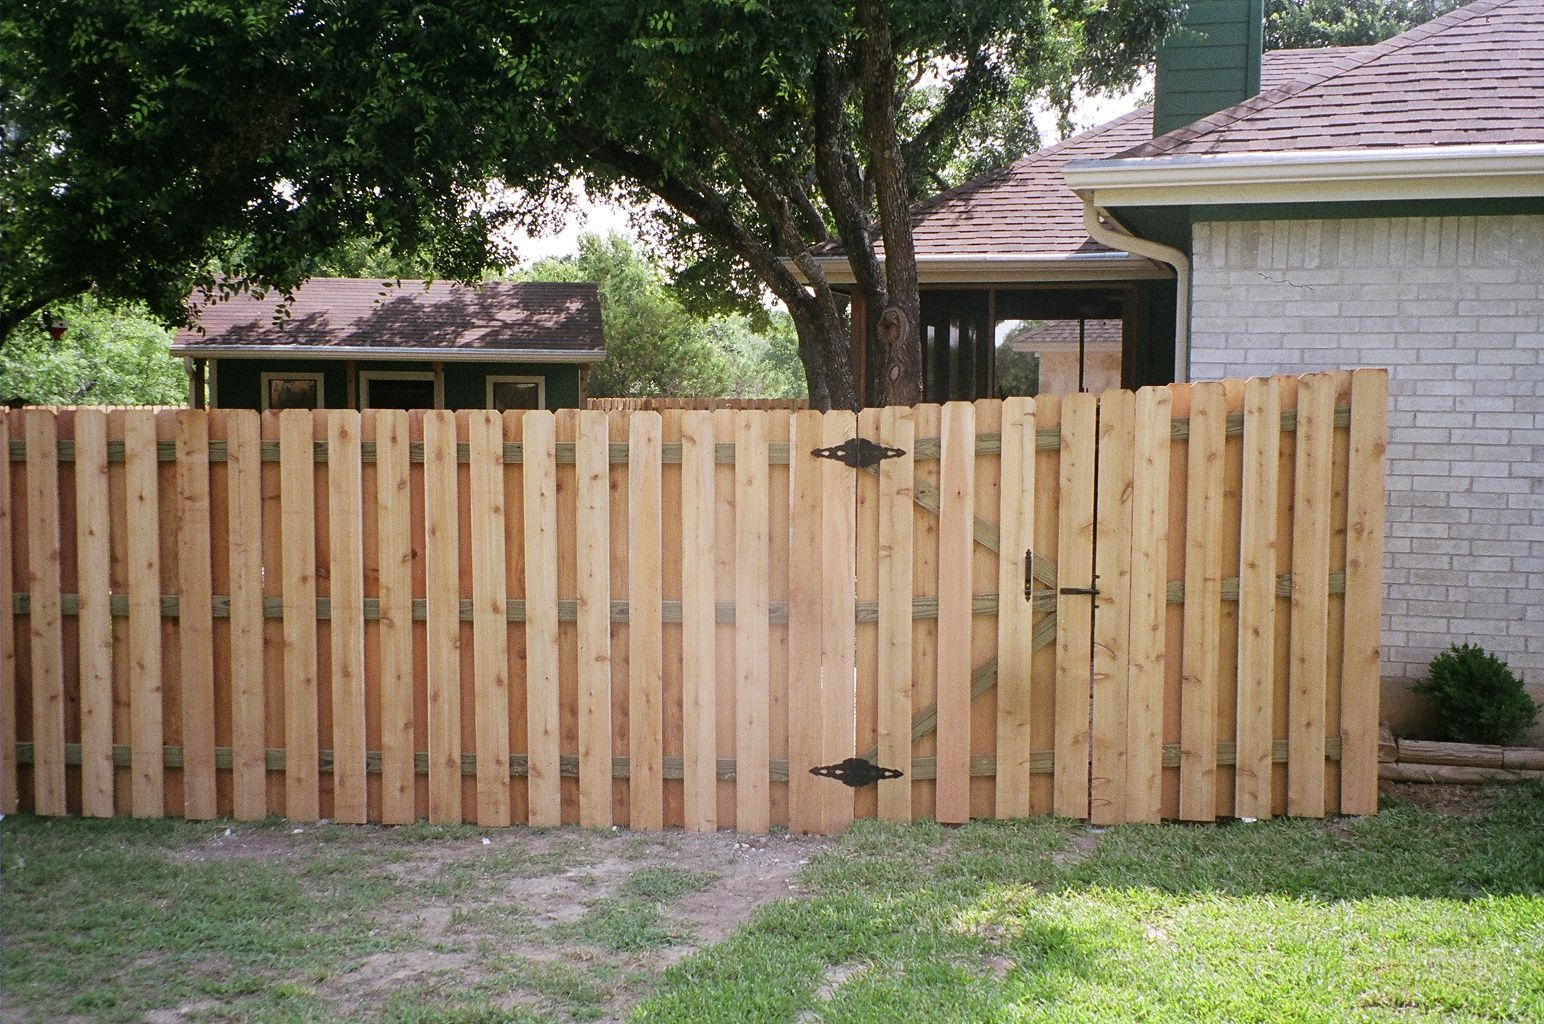 Fence Gate Design Ideas By Wooden: Cedar Wood Shadow Box Style Garden Fence